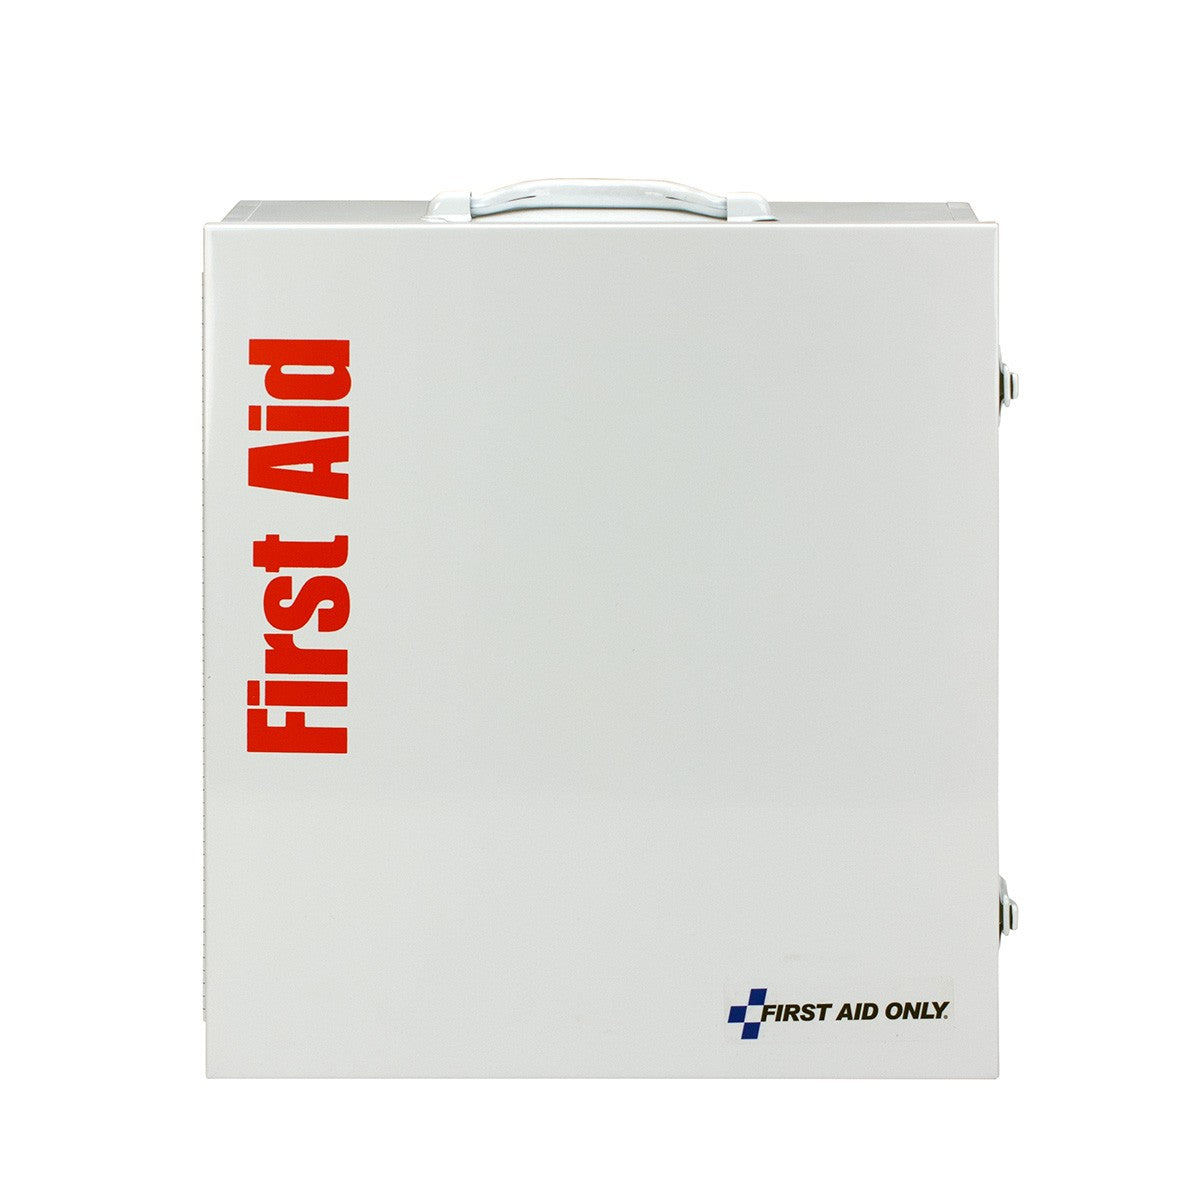 First Aid Only 100 Person 3 Shelf First Aid Metal Cabinet, ANSI B+, Type I and II, without Medications